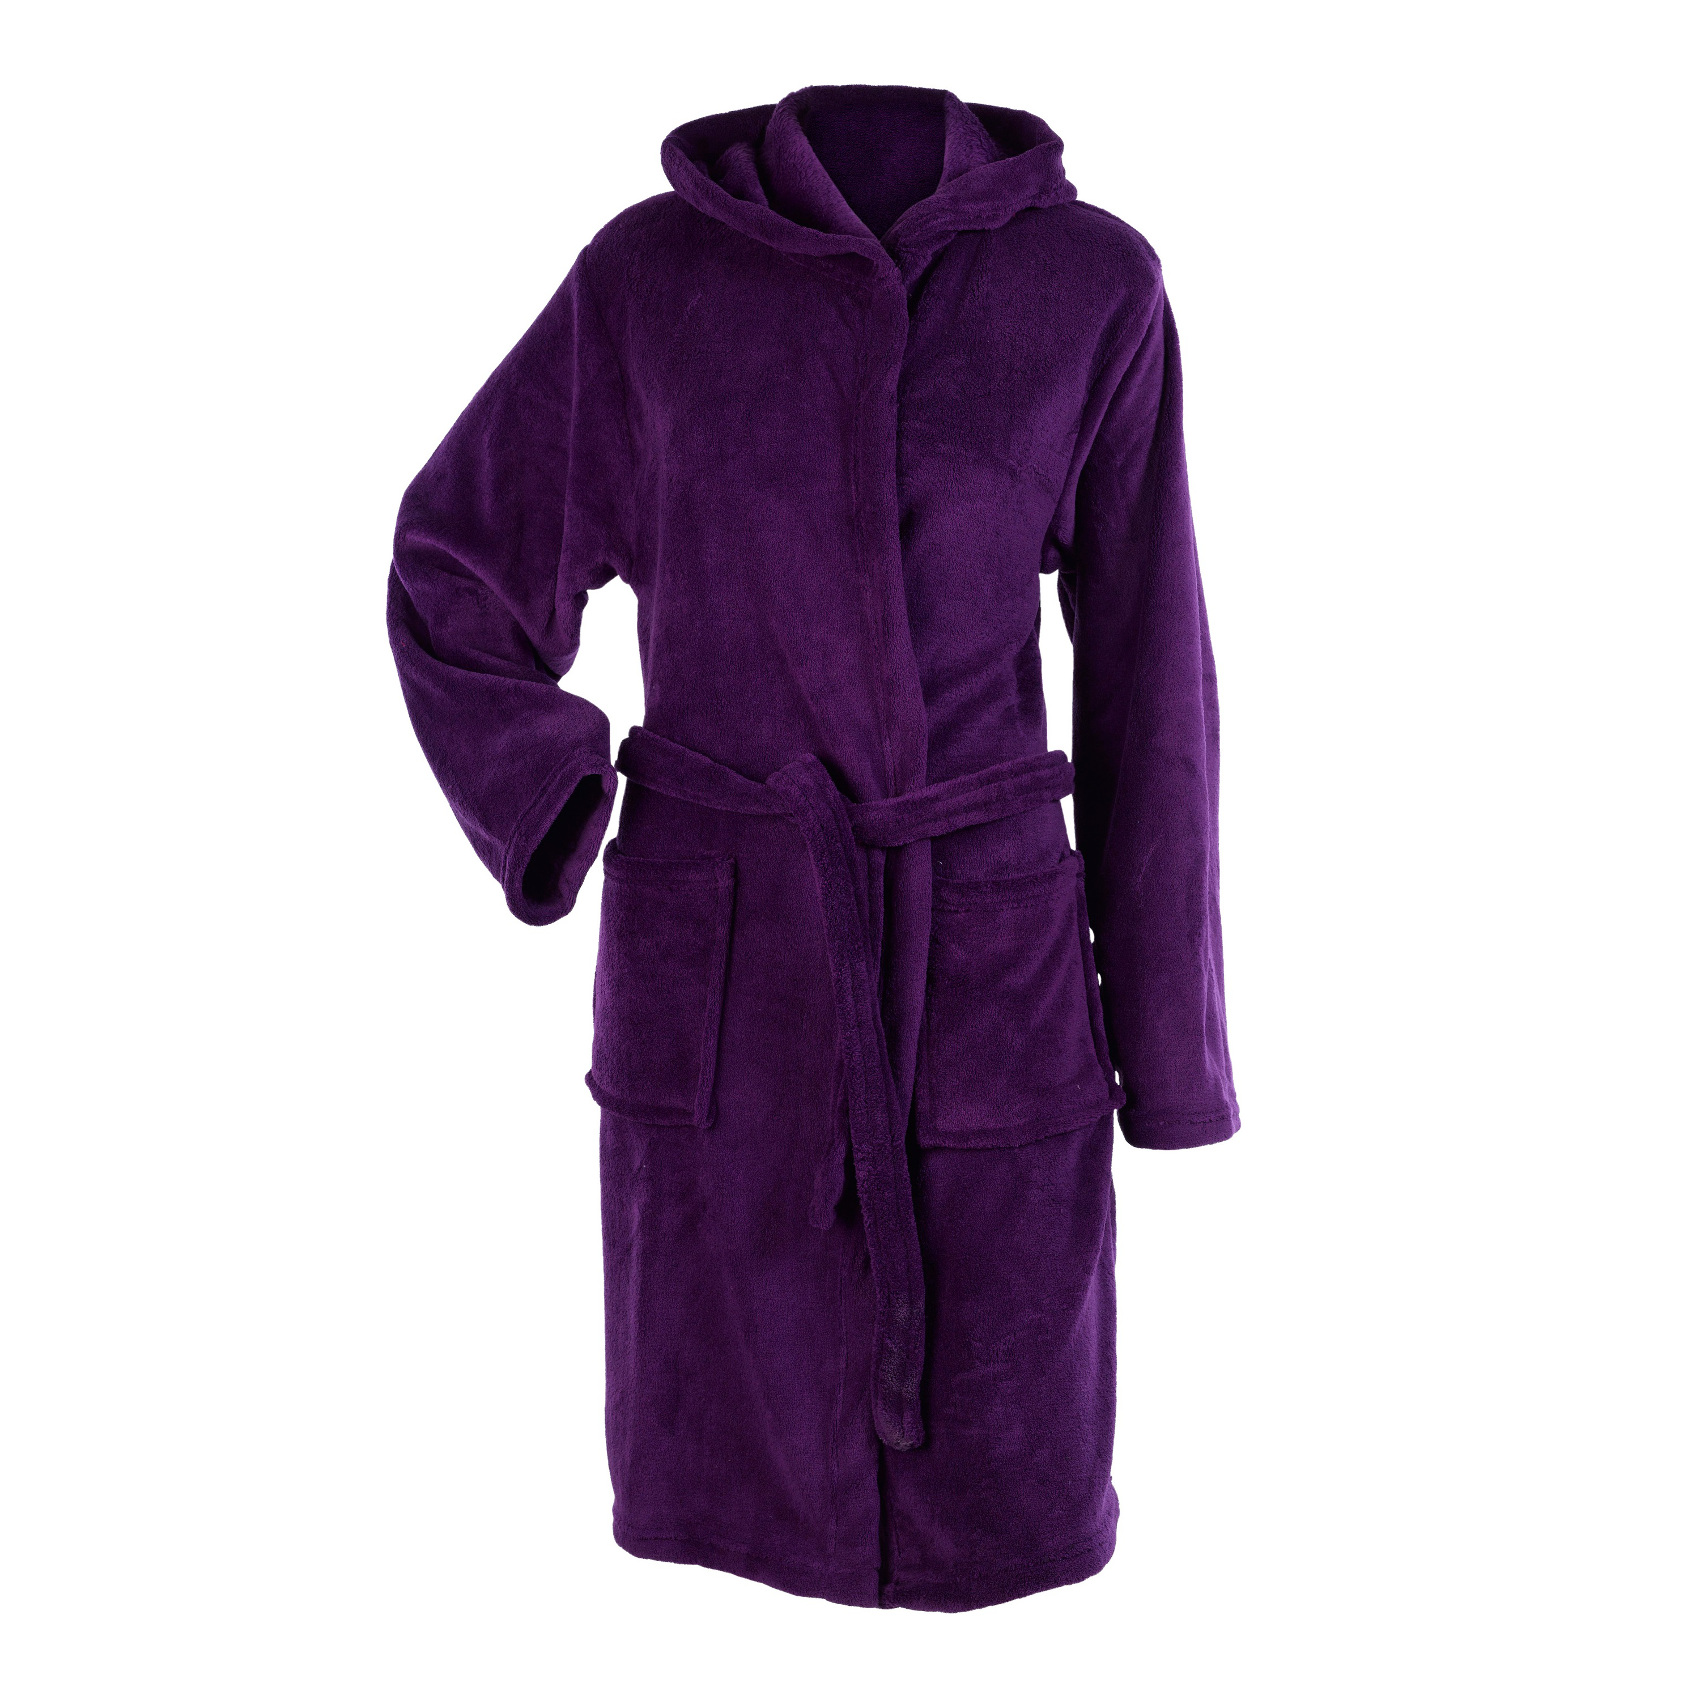 Dressing Gowns And Robes: Womens Hooded Wrap Around Dressing Gown Soft Coral Fleece